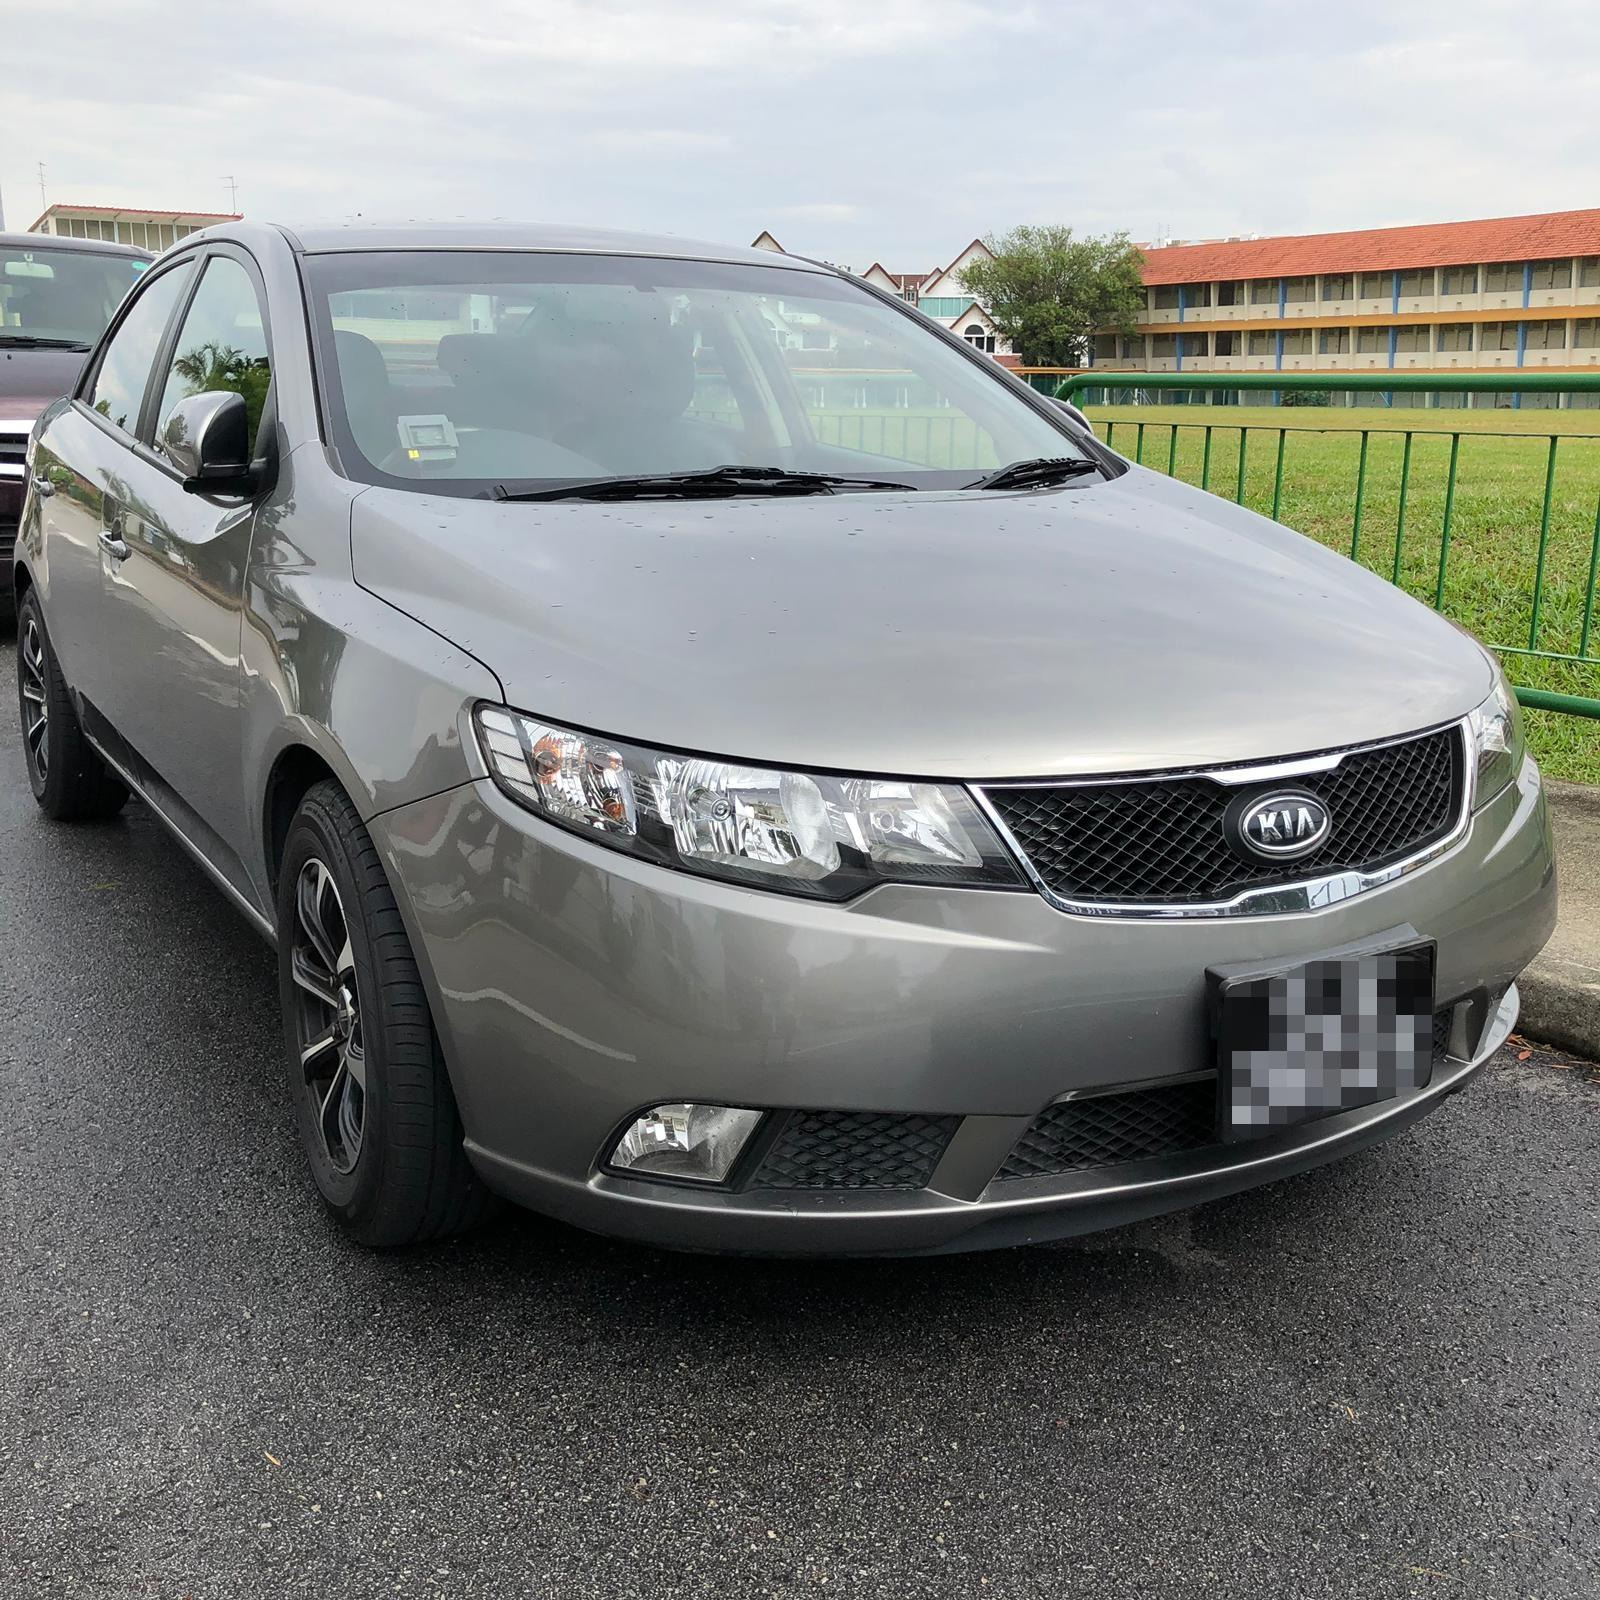 KIA Cerato Forte 1.6A For Rent